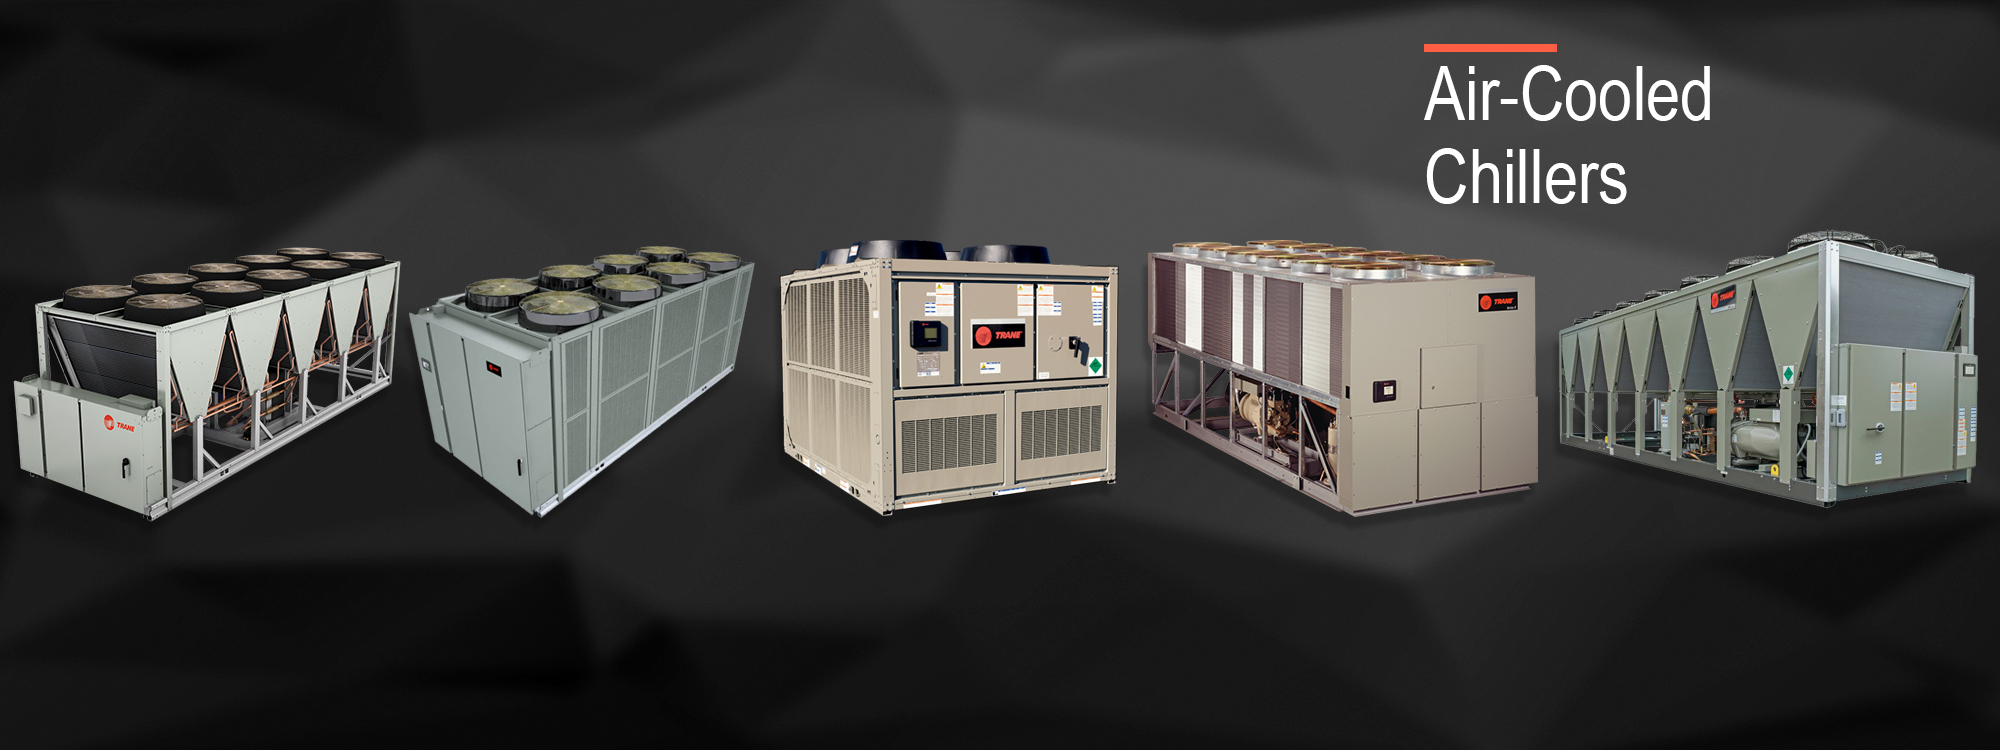 Air-Cooled Chillers | Trane Commercial